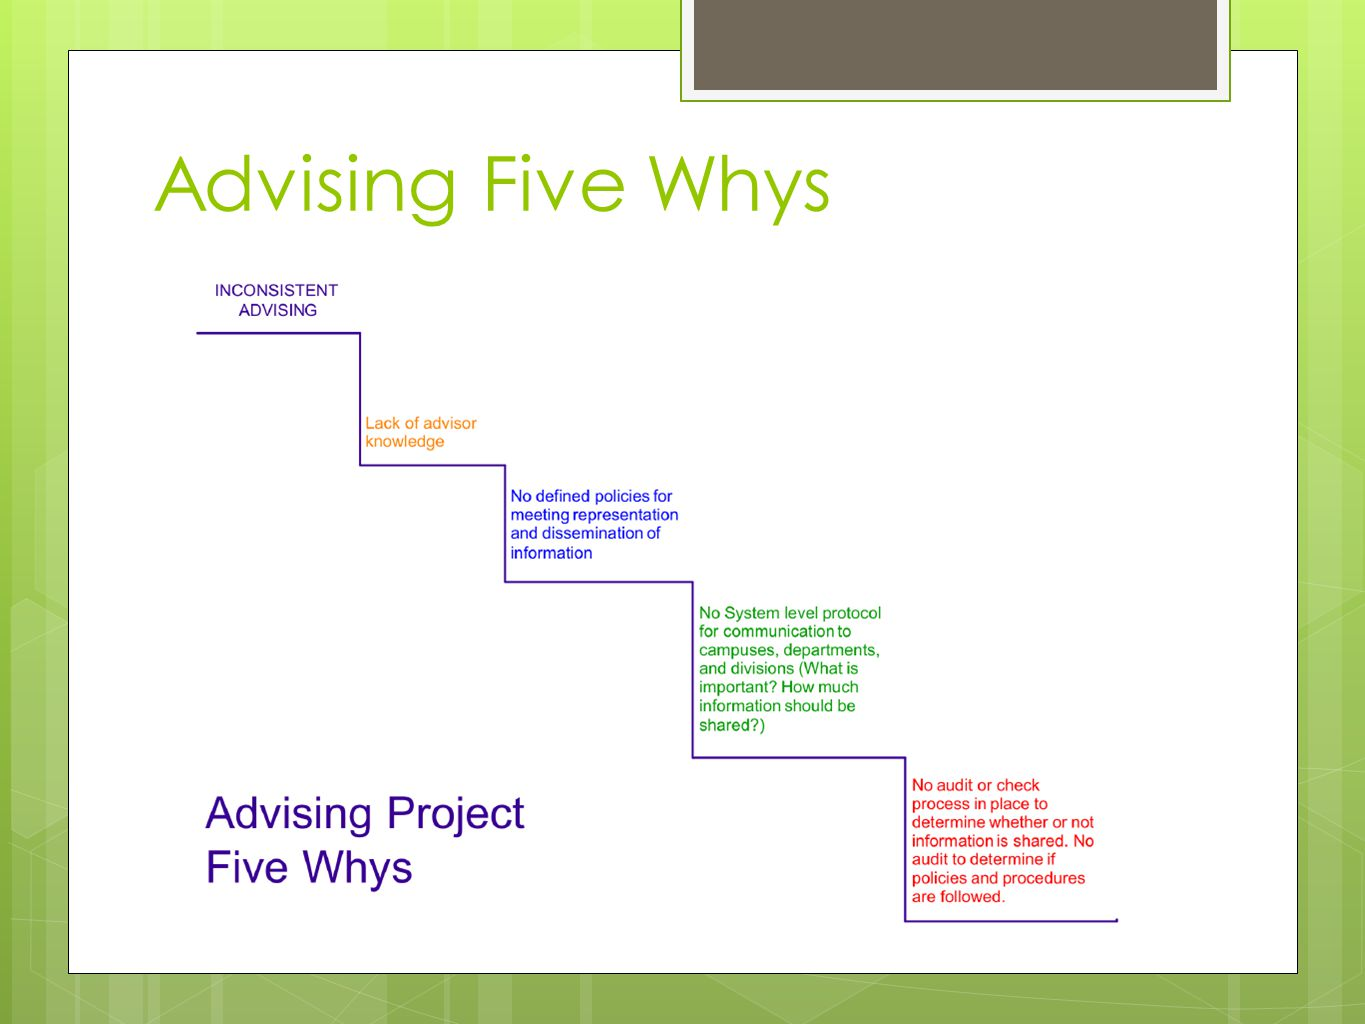 Advising Five Whys